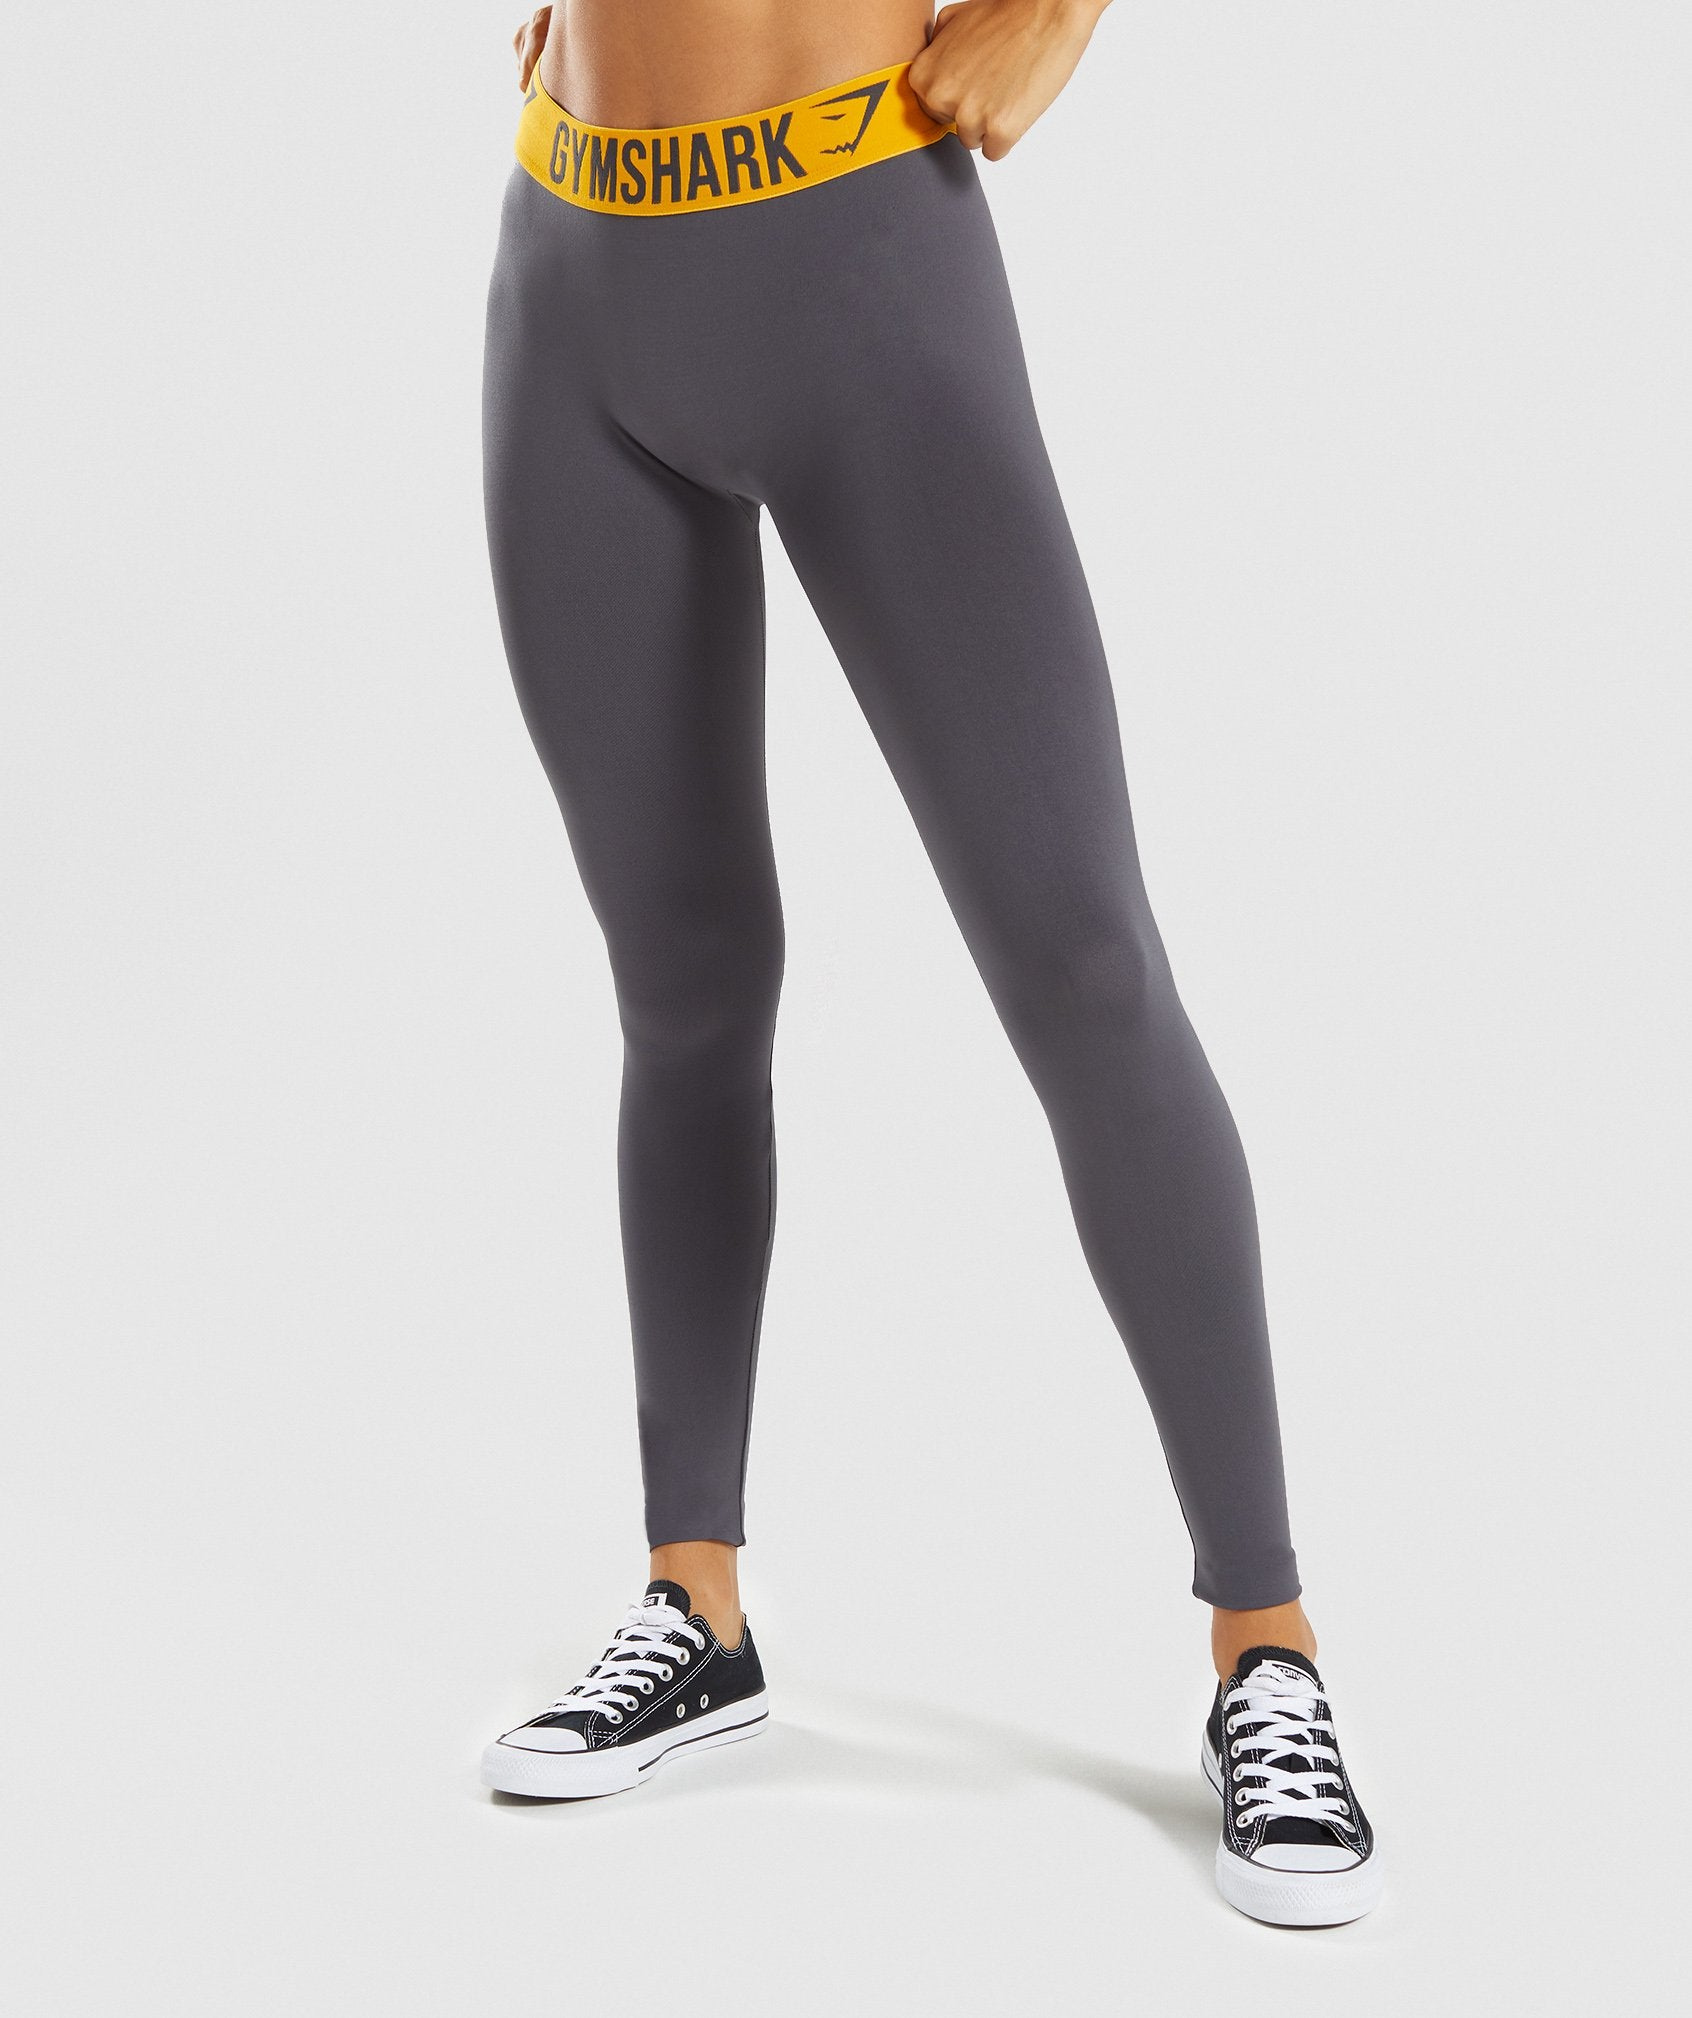 a3f276e1c Gymshark Fit Leggings - Charcoal Citrus Yellow